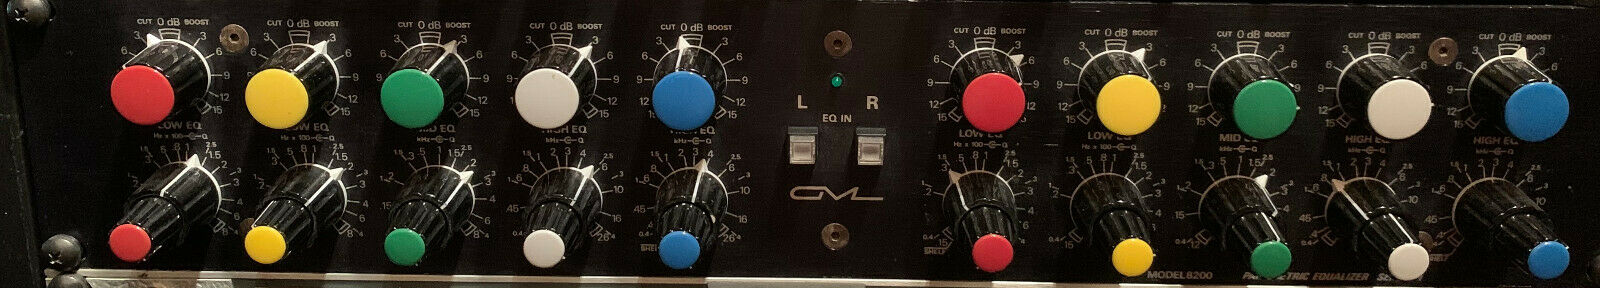 Massenburg GML 8200, Parametric Equalizer, 2 Ch - 5 Band. Buy it now for 4000.00